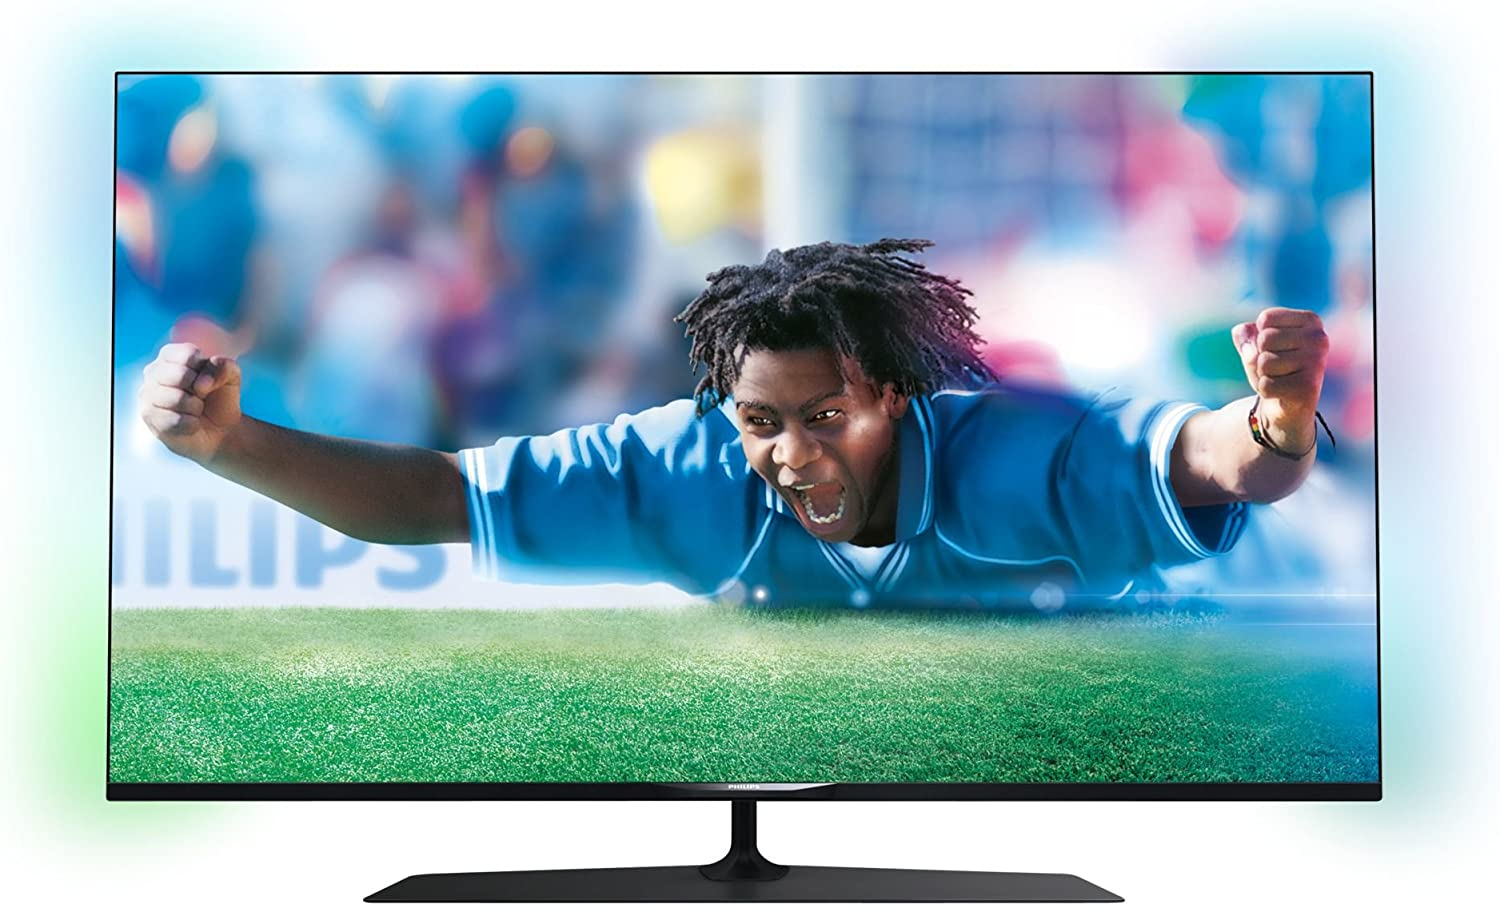 Philips 7800 Series - Televisor (4K Ultra HD, 802.11n, A+, 16:9, 16:9, 3840 x 2160): Amazon.es: Electrónica